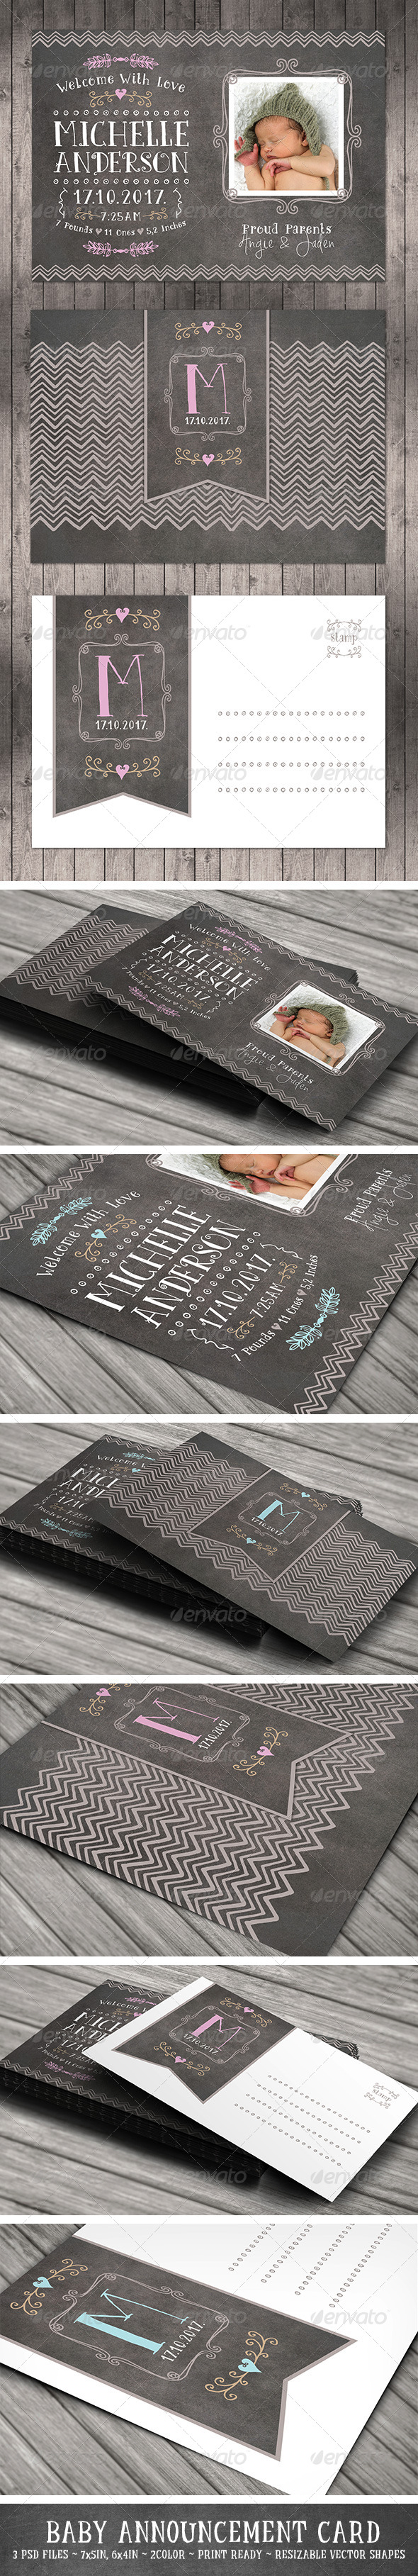 GraphicRiver Baby Announcement Card Vol.2 8314979